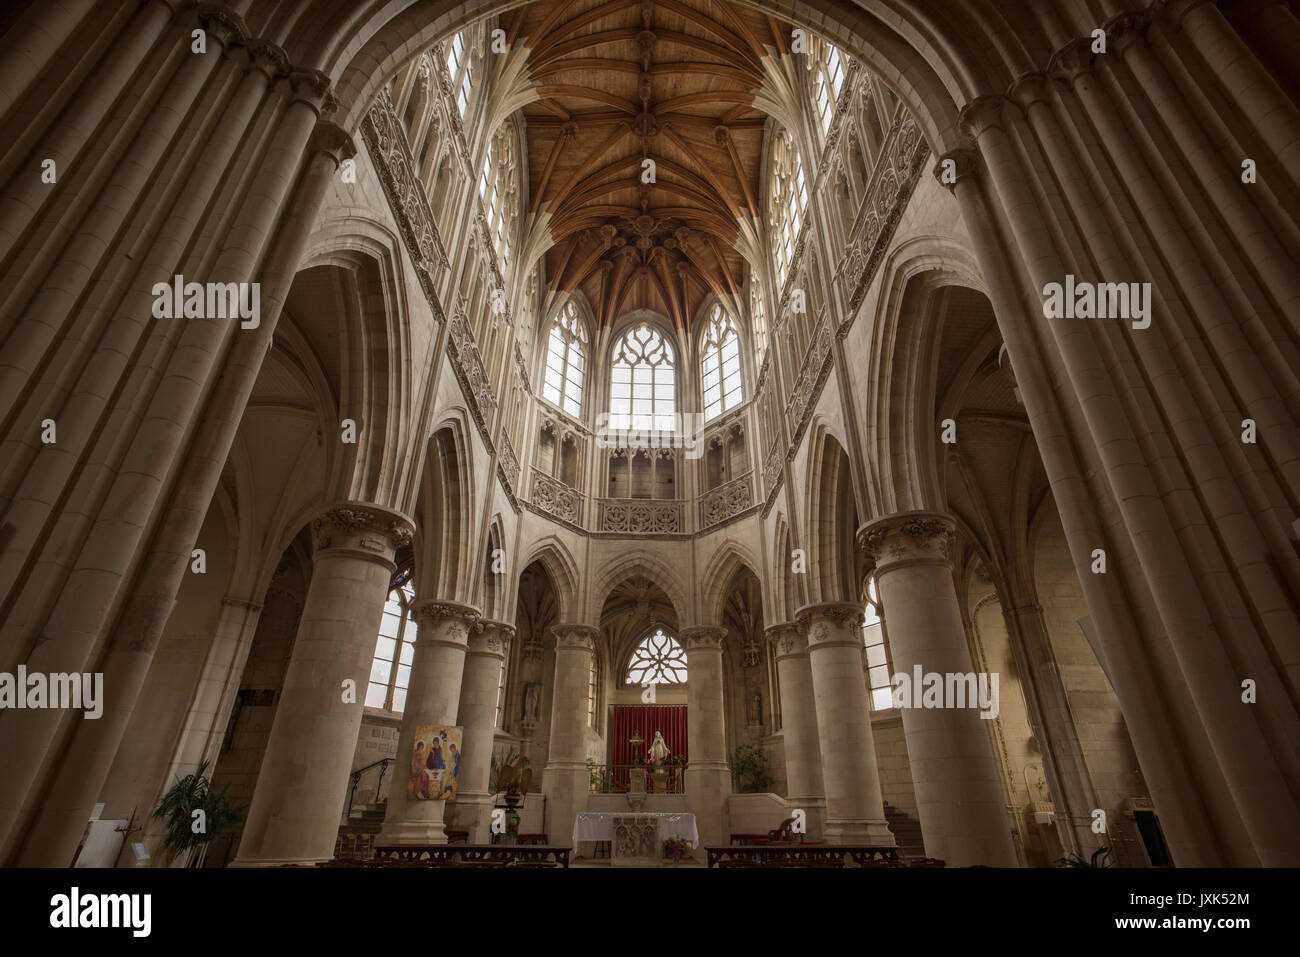 Falaise,Calvados,Normandy,France. Church of the Holy Trinity. Aug 2017 The Church of the Holy Trinity in Falaise - Stock Image